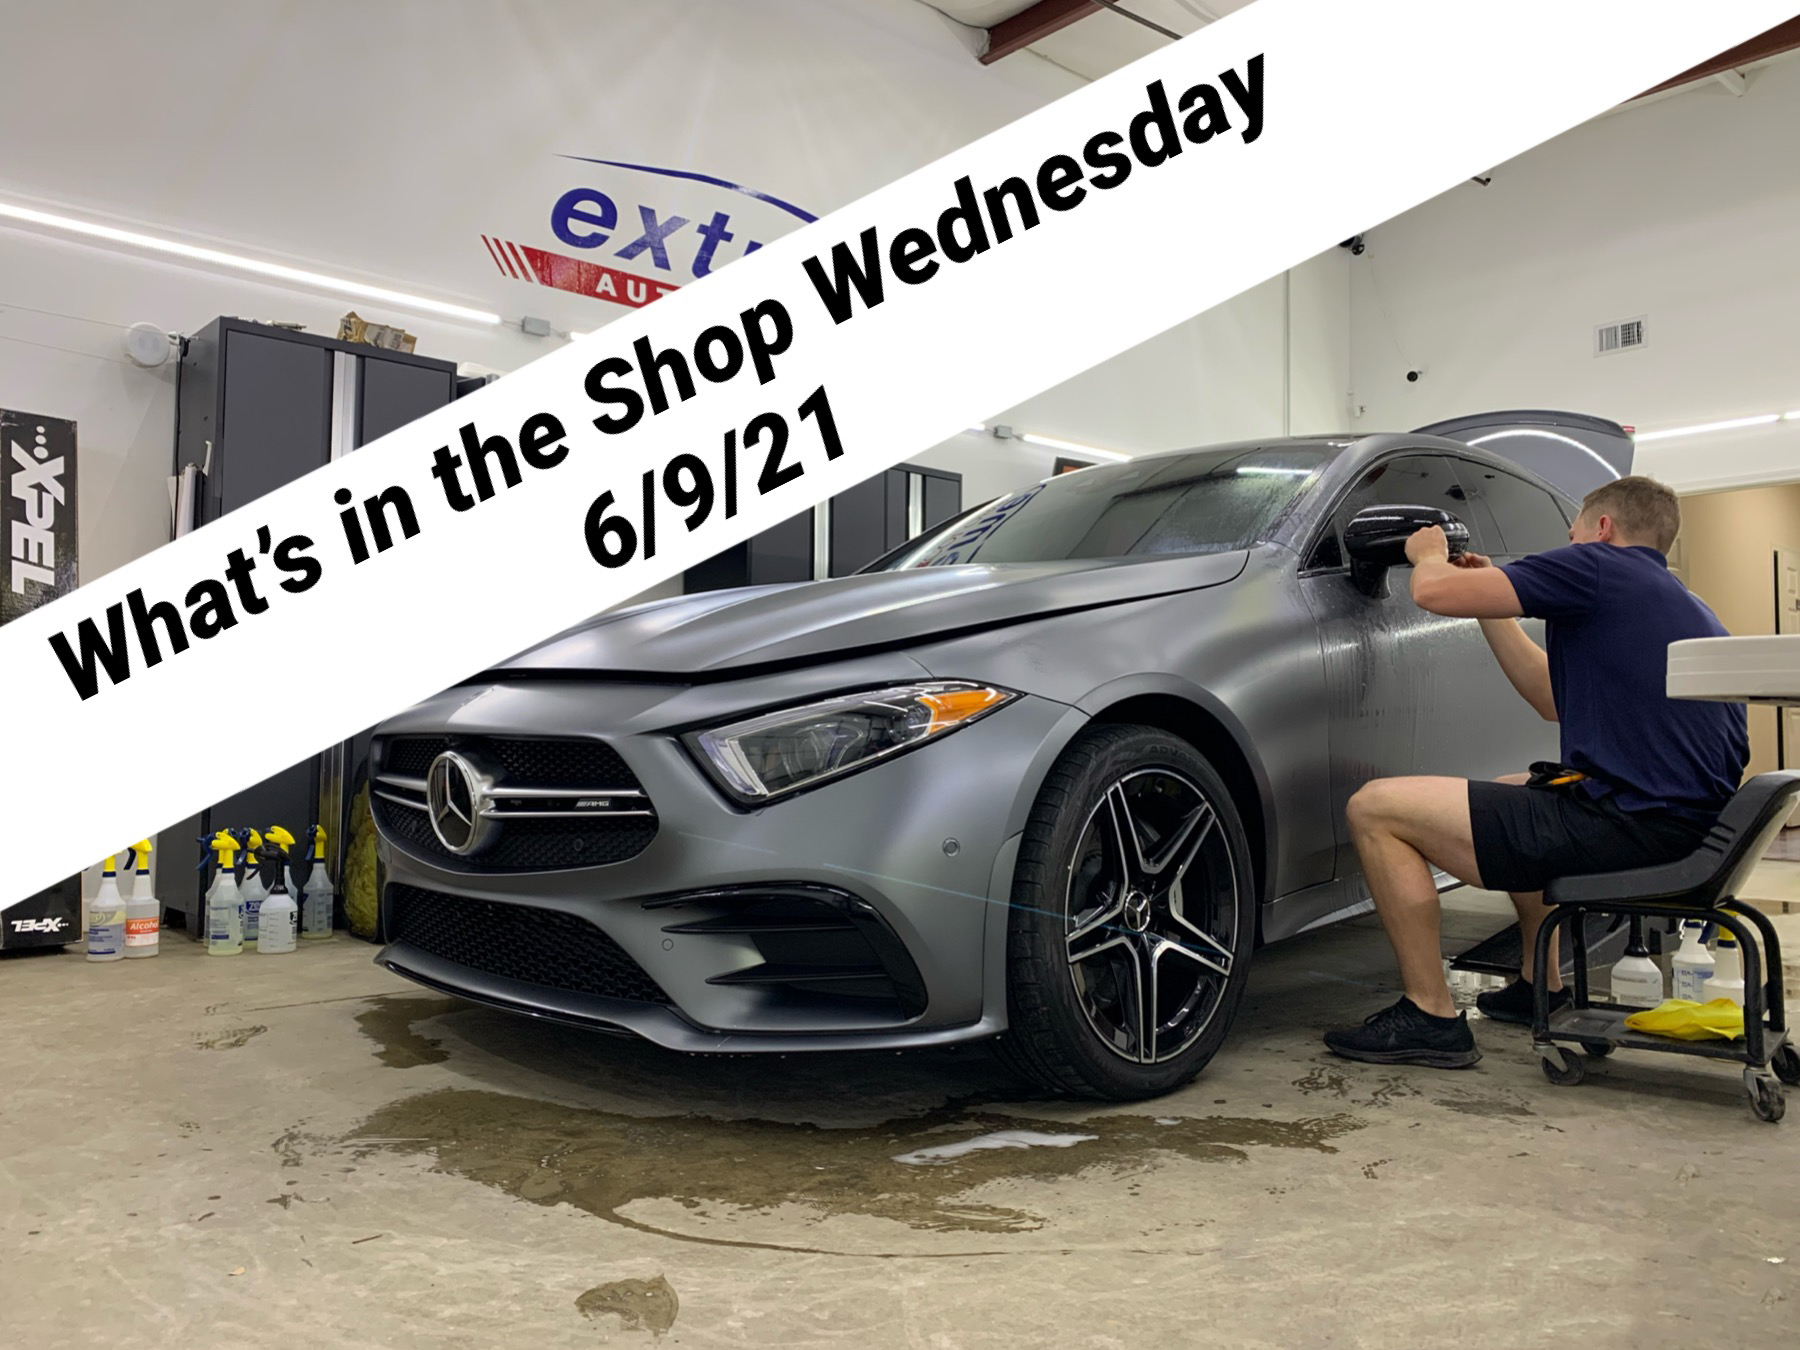 What's in the Shop Wednesday 6/9/21